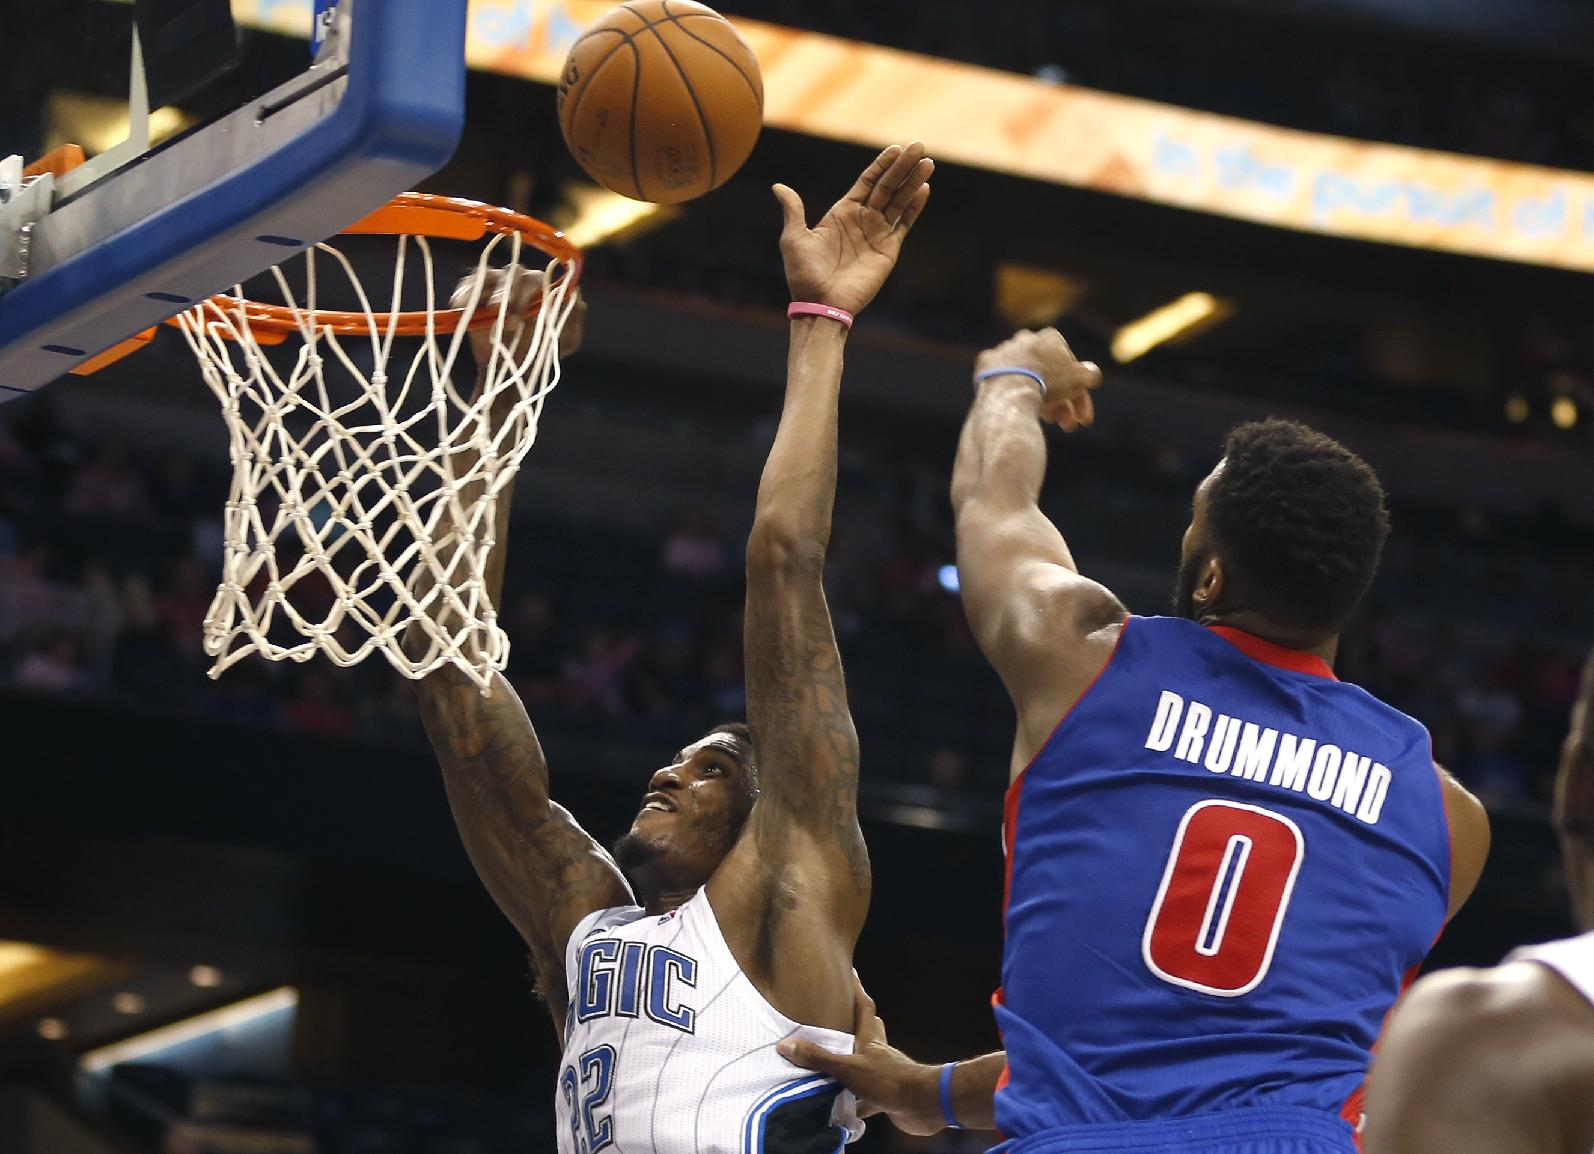 Orlando Magic forward Solomon Jones (22) gets fouled by Detroit Pistons center Andre Drummond (0) during the second half of an NBA basketball game on Sunday,  Oct. 20, 2013, in Orlando, Fla..The Magic won 86-87